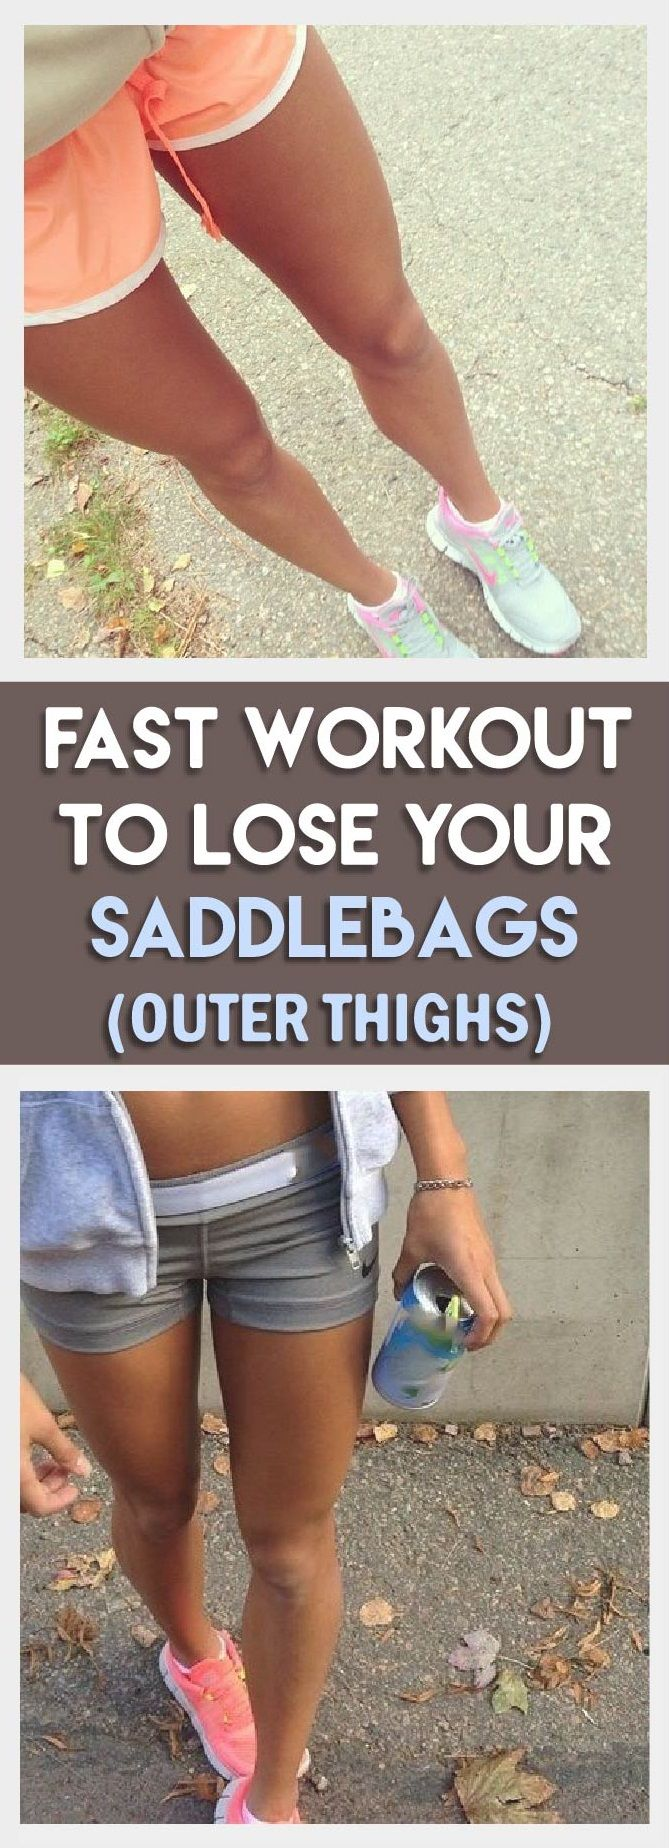 Fast Workout To Lose Your Saddlebags (Outer Thighs)